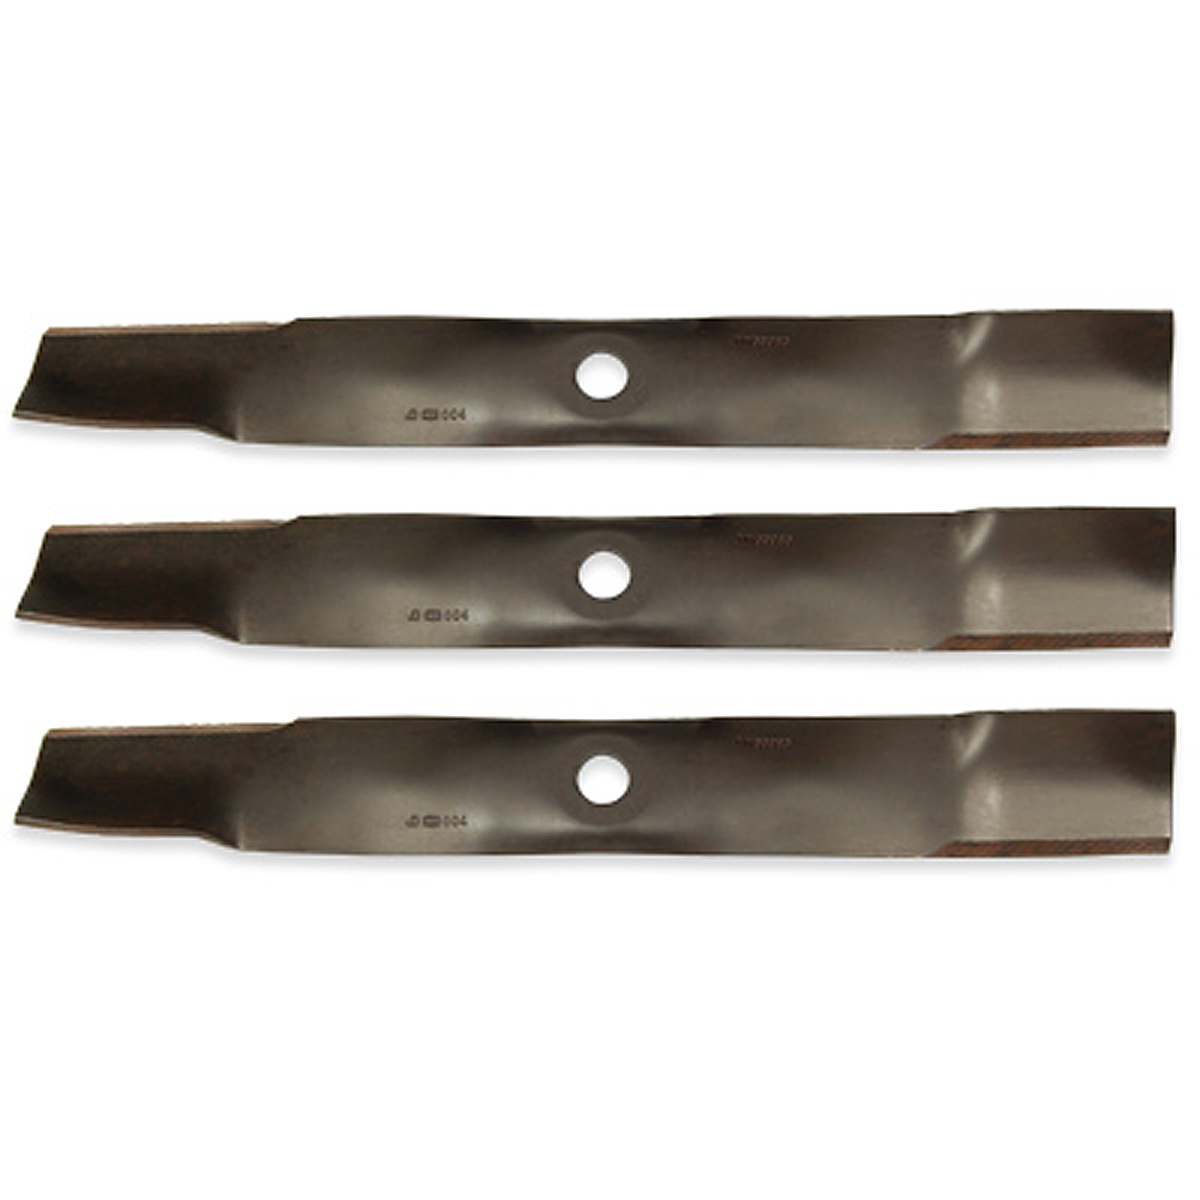 Lawn Mower Blade (Set of 3 Blades) -Standard for Signature Series with 60